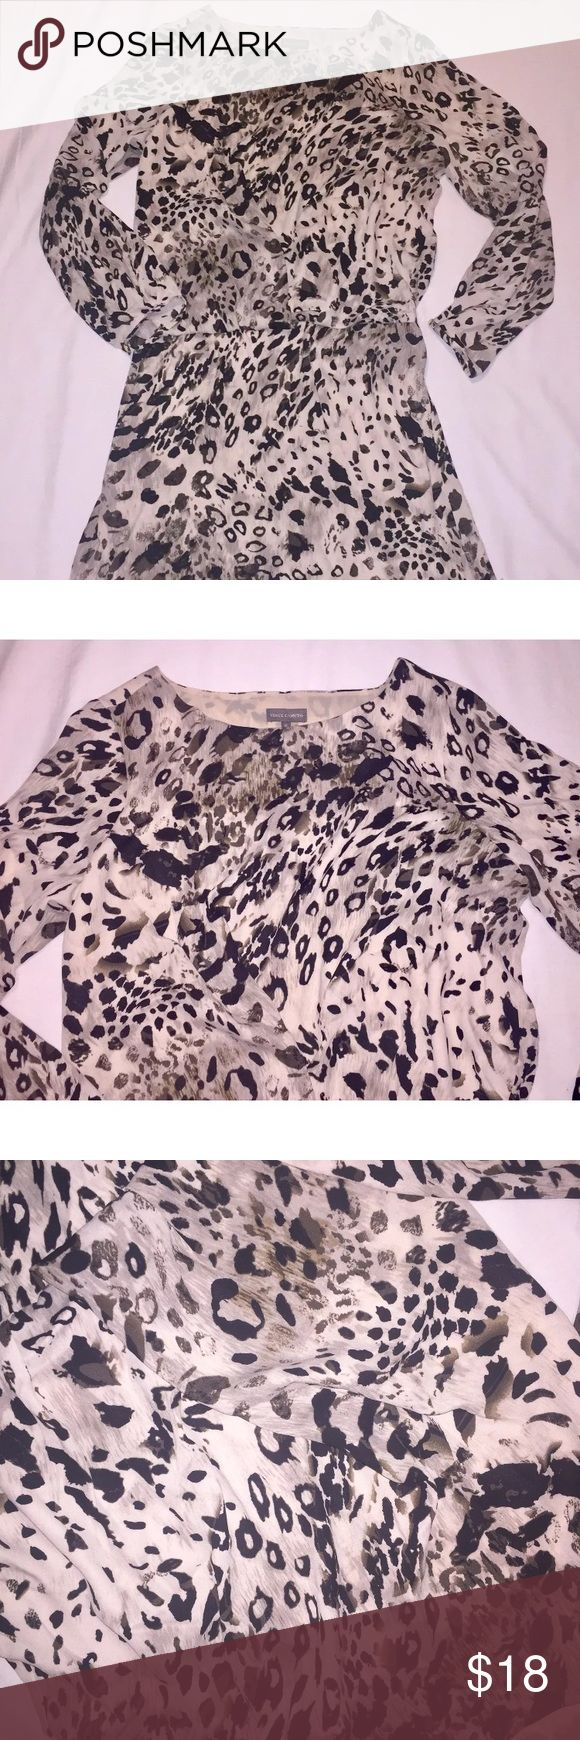 """Vince Camuto Animal Print long sleeve dress EUC Brand: Vince Camuto  Size: medium  Color: Browns and black  Zipper: none  Condition: excellent used condition  Description: perfect for fall, paired with booties. Machine washable. Lightweight and comfortable fitting.  measurements laying flat:  armpit to armpit 21.5""""  armpit to bottom dress hem 28""""  armpit to end of sleeve 18"""" Vince Camuto Dresses Mini"""